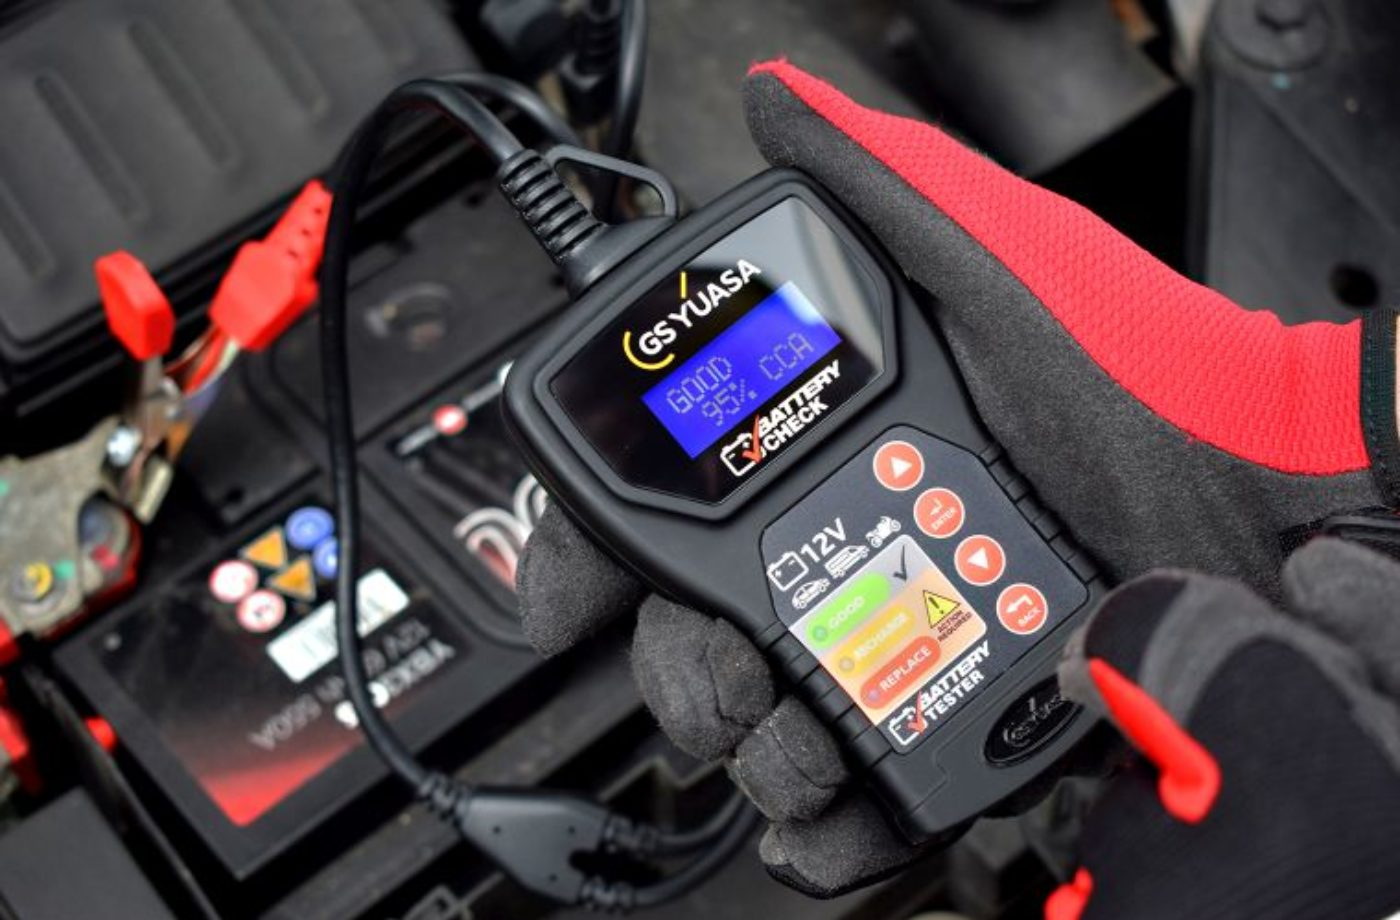 Yuasa issues cold weather battery warning